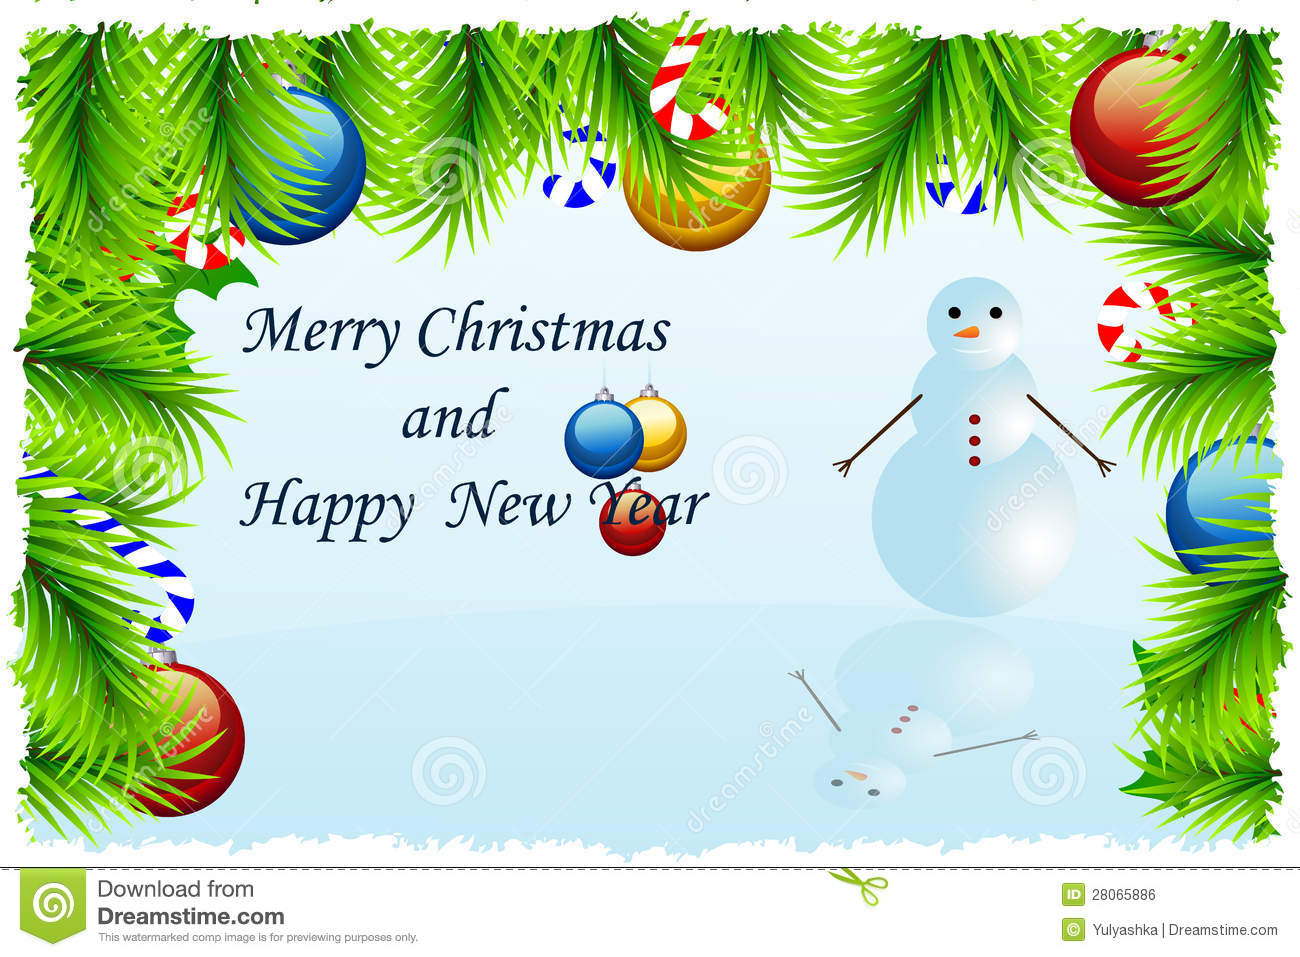 Photoshop Christmas Card Templates  Christmas Card Templates For Word